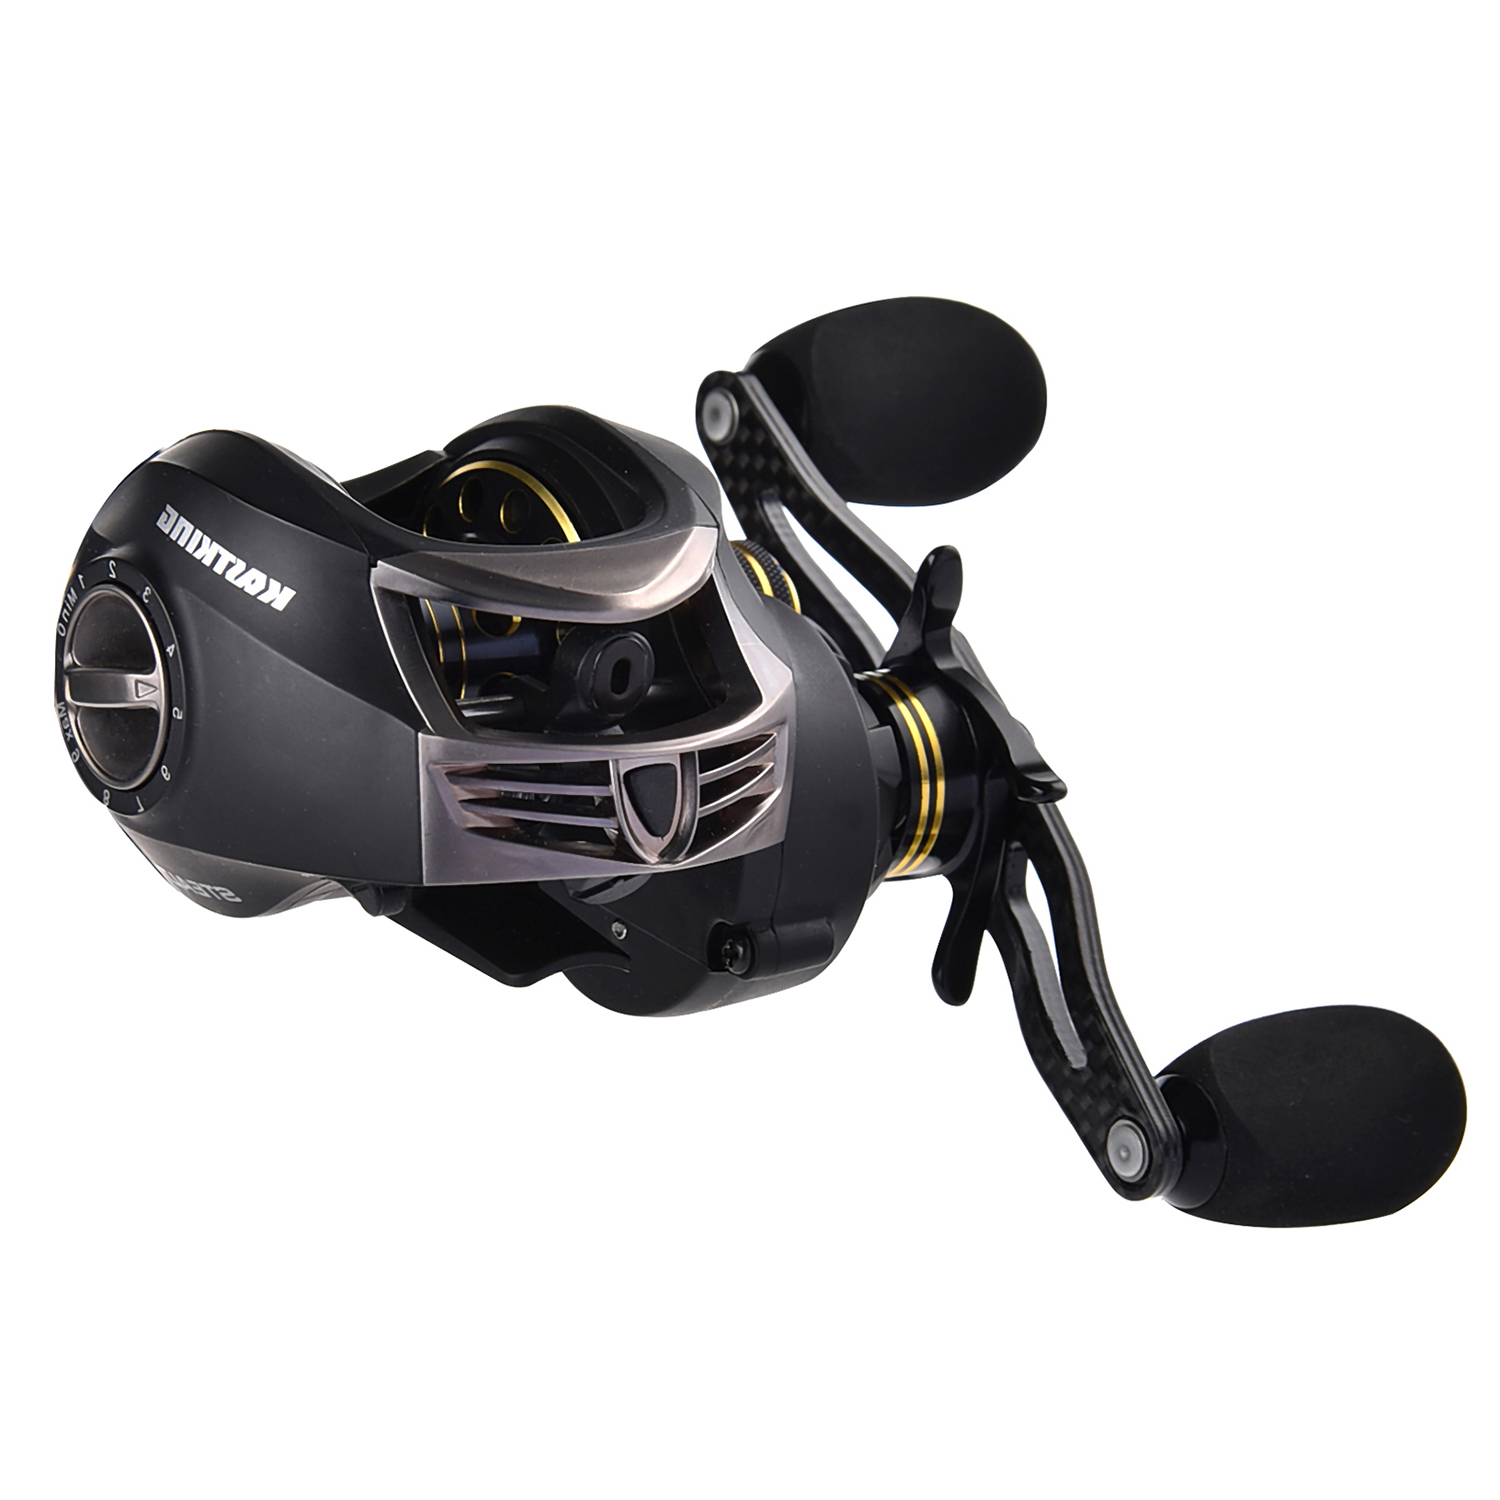 KastKing Stealth Baitcasting Reel